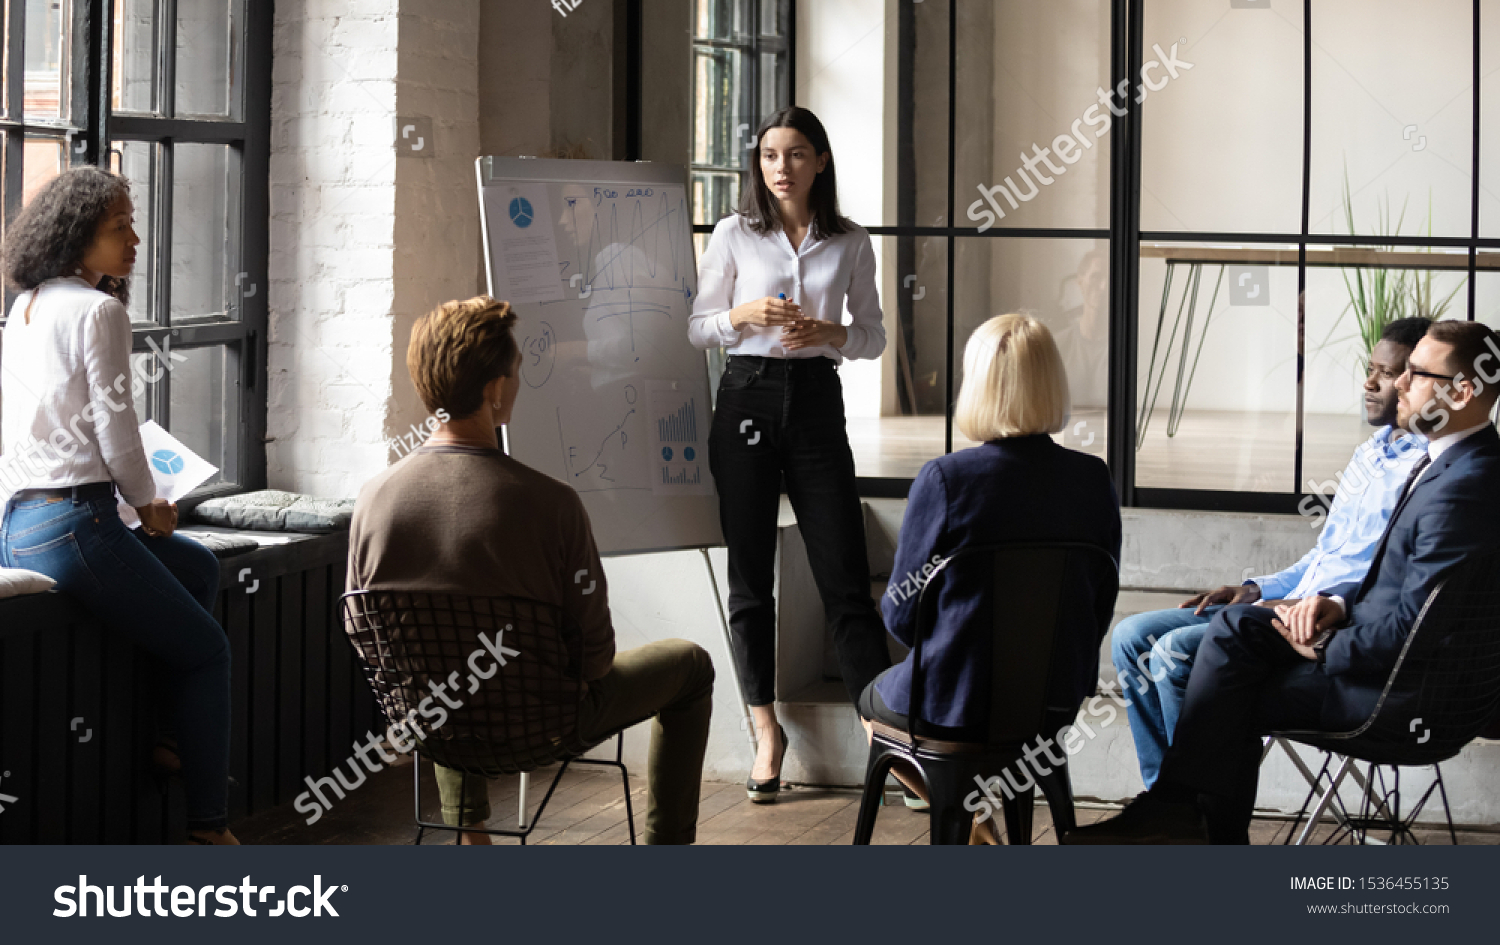 Confident lady business trainer coach leader give flip chart presentation consulting clients teaching employees training team people speaking explaining strategy at marketing workshop concept #1536455135